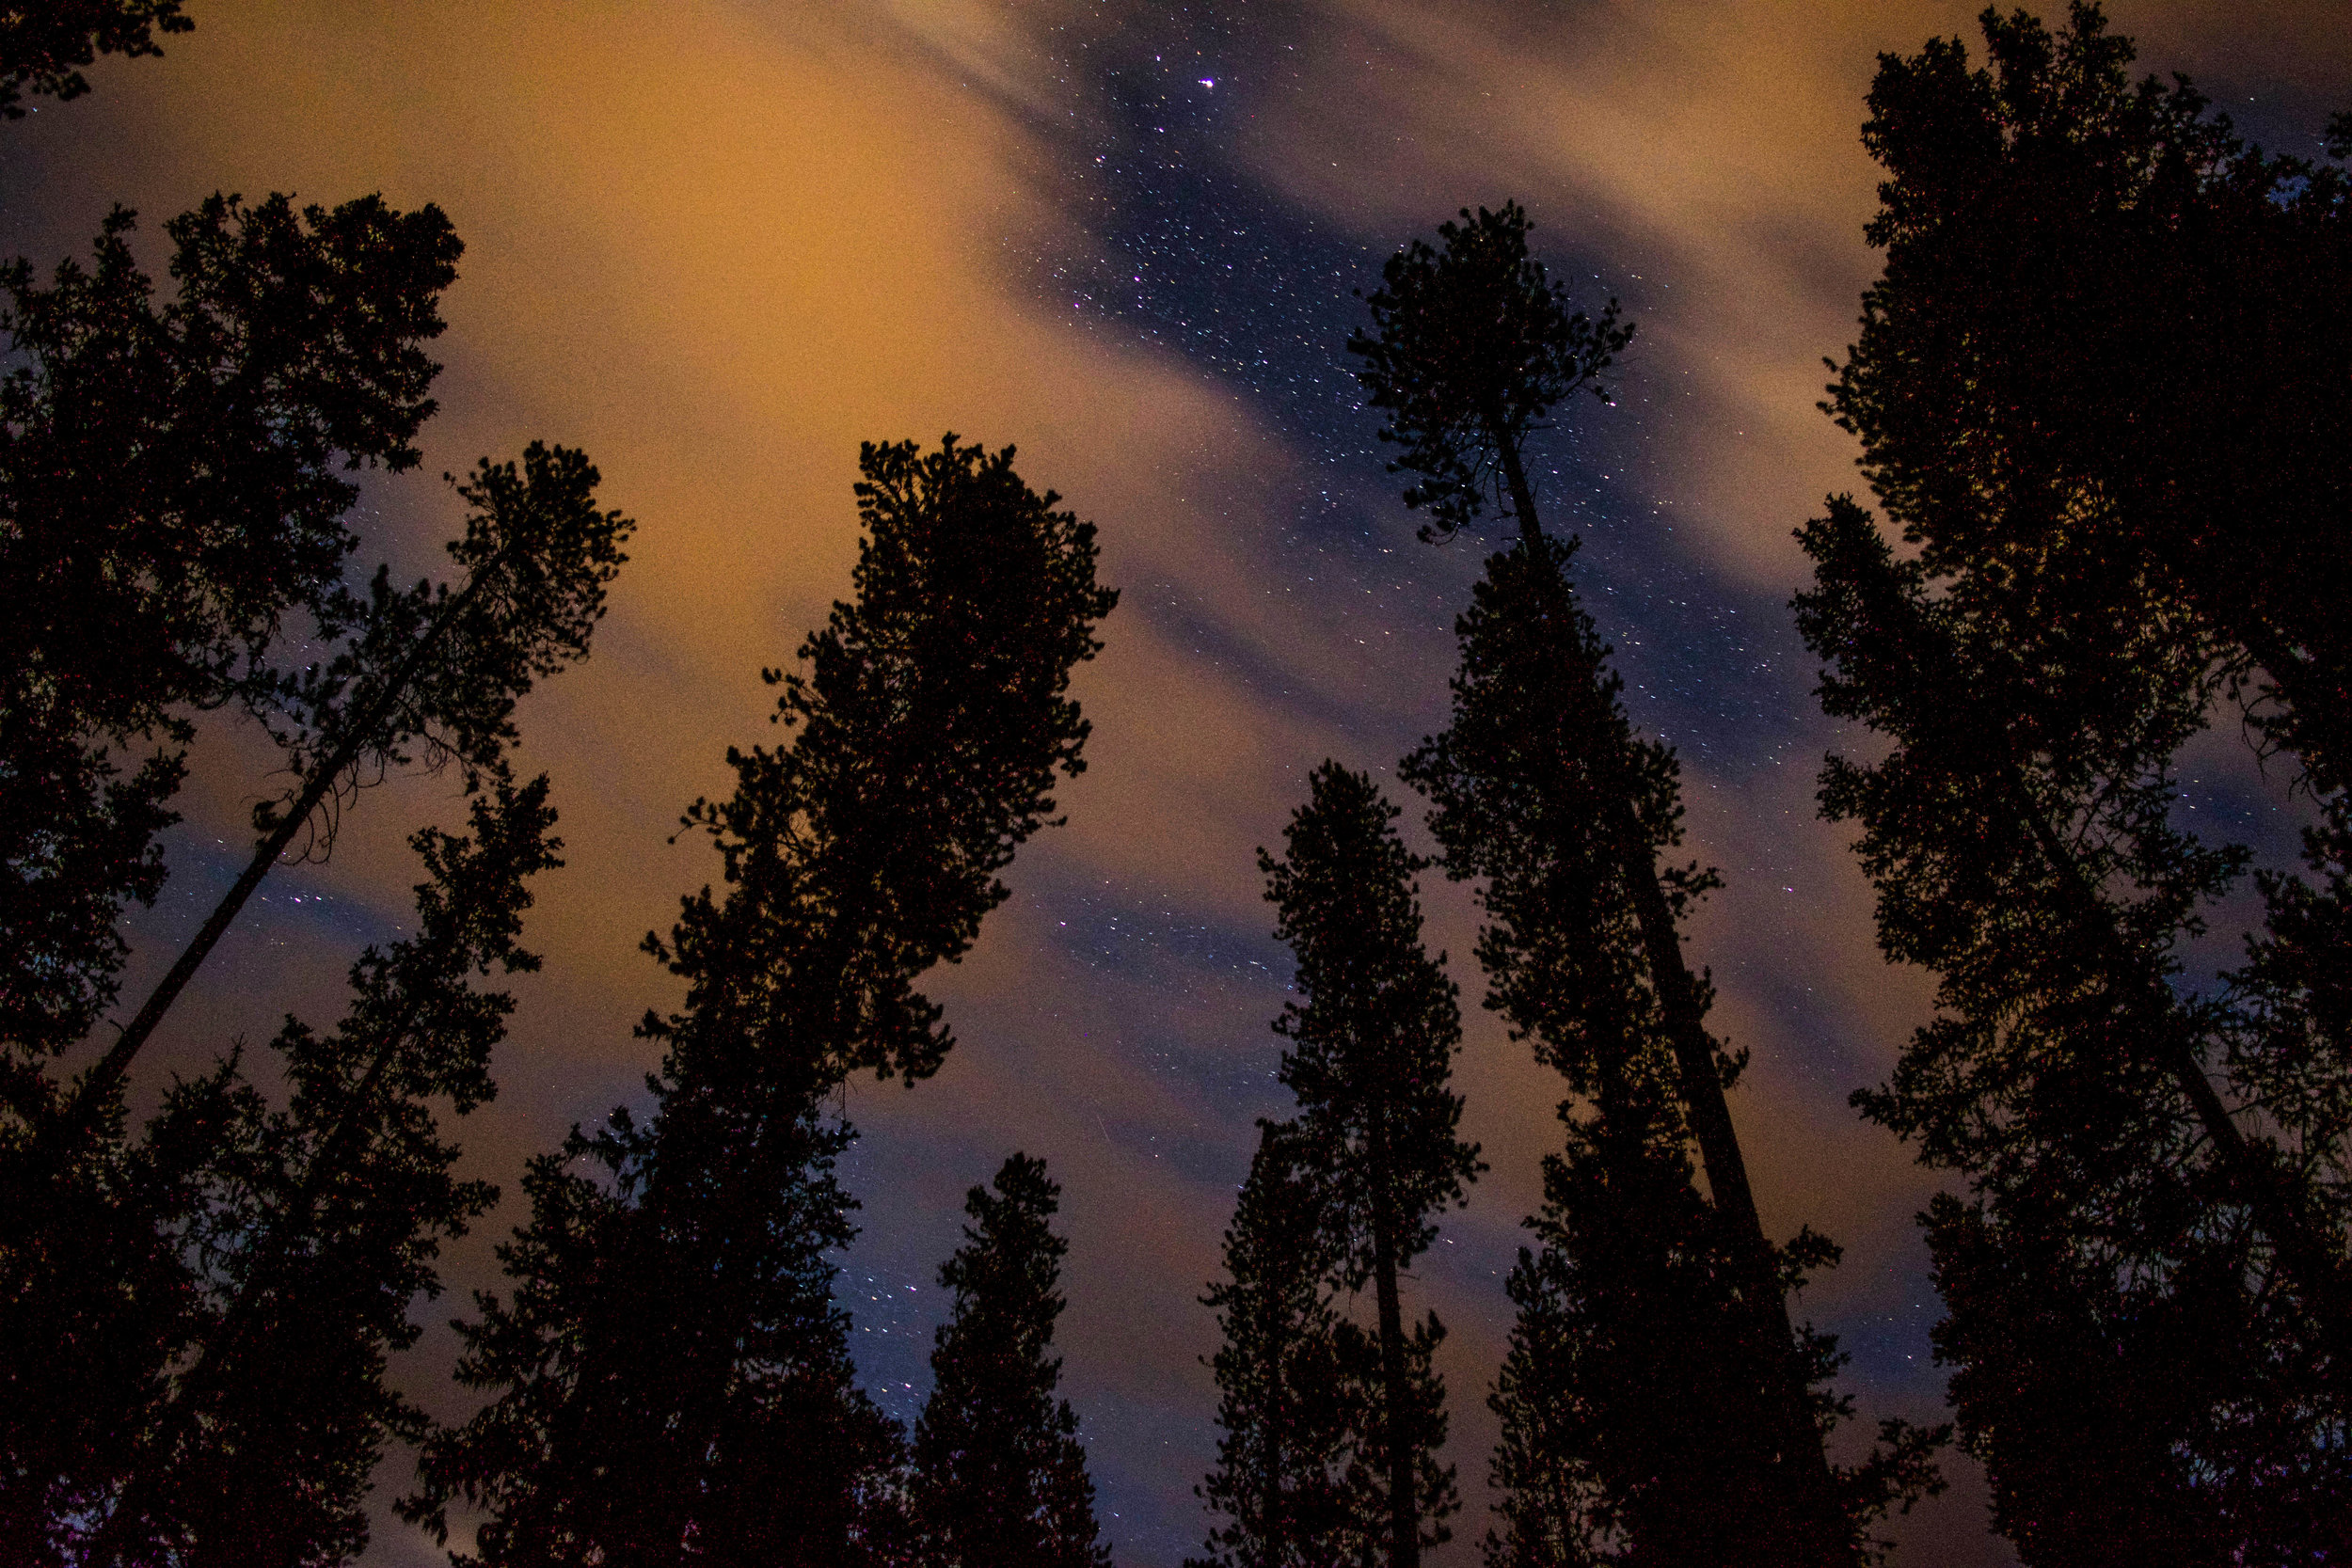 Unnaturally colored clouds pass over a pine forest in Banff, obscuring the countless stars.